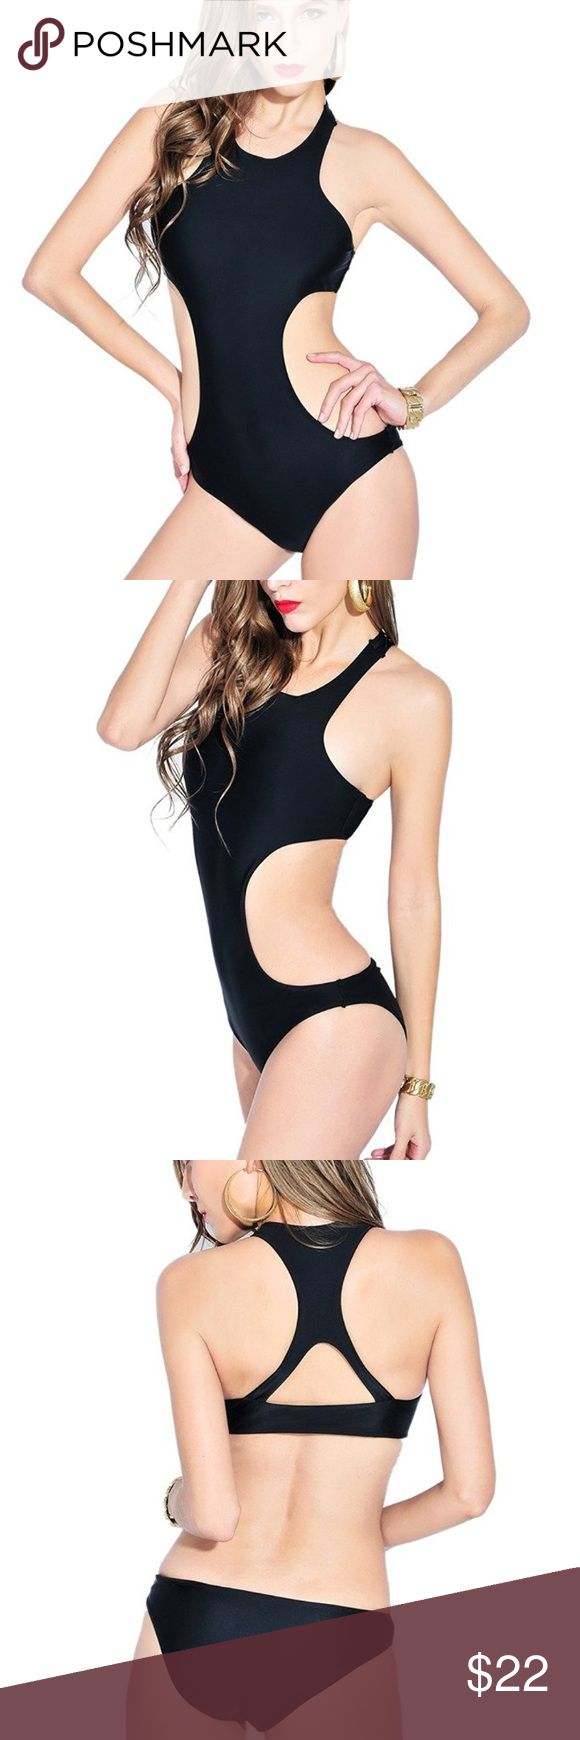 Brandman Womens Monokini CutOut One piece Swimsuit Brandman Womens Monokini CutOut One piece Swimsuit.. Fits more like a M-L, runs small..                                                              XL(US8-10): Cup Size B/C Bust 33-34.5; Waist 28-29.5; Hips 34.5-36 brandman Swim One Pieces